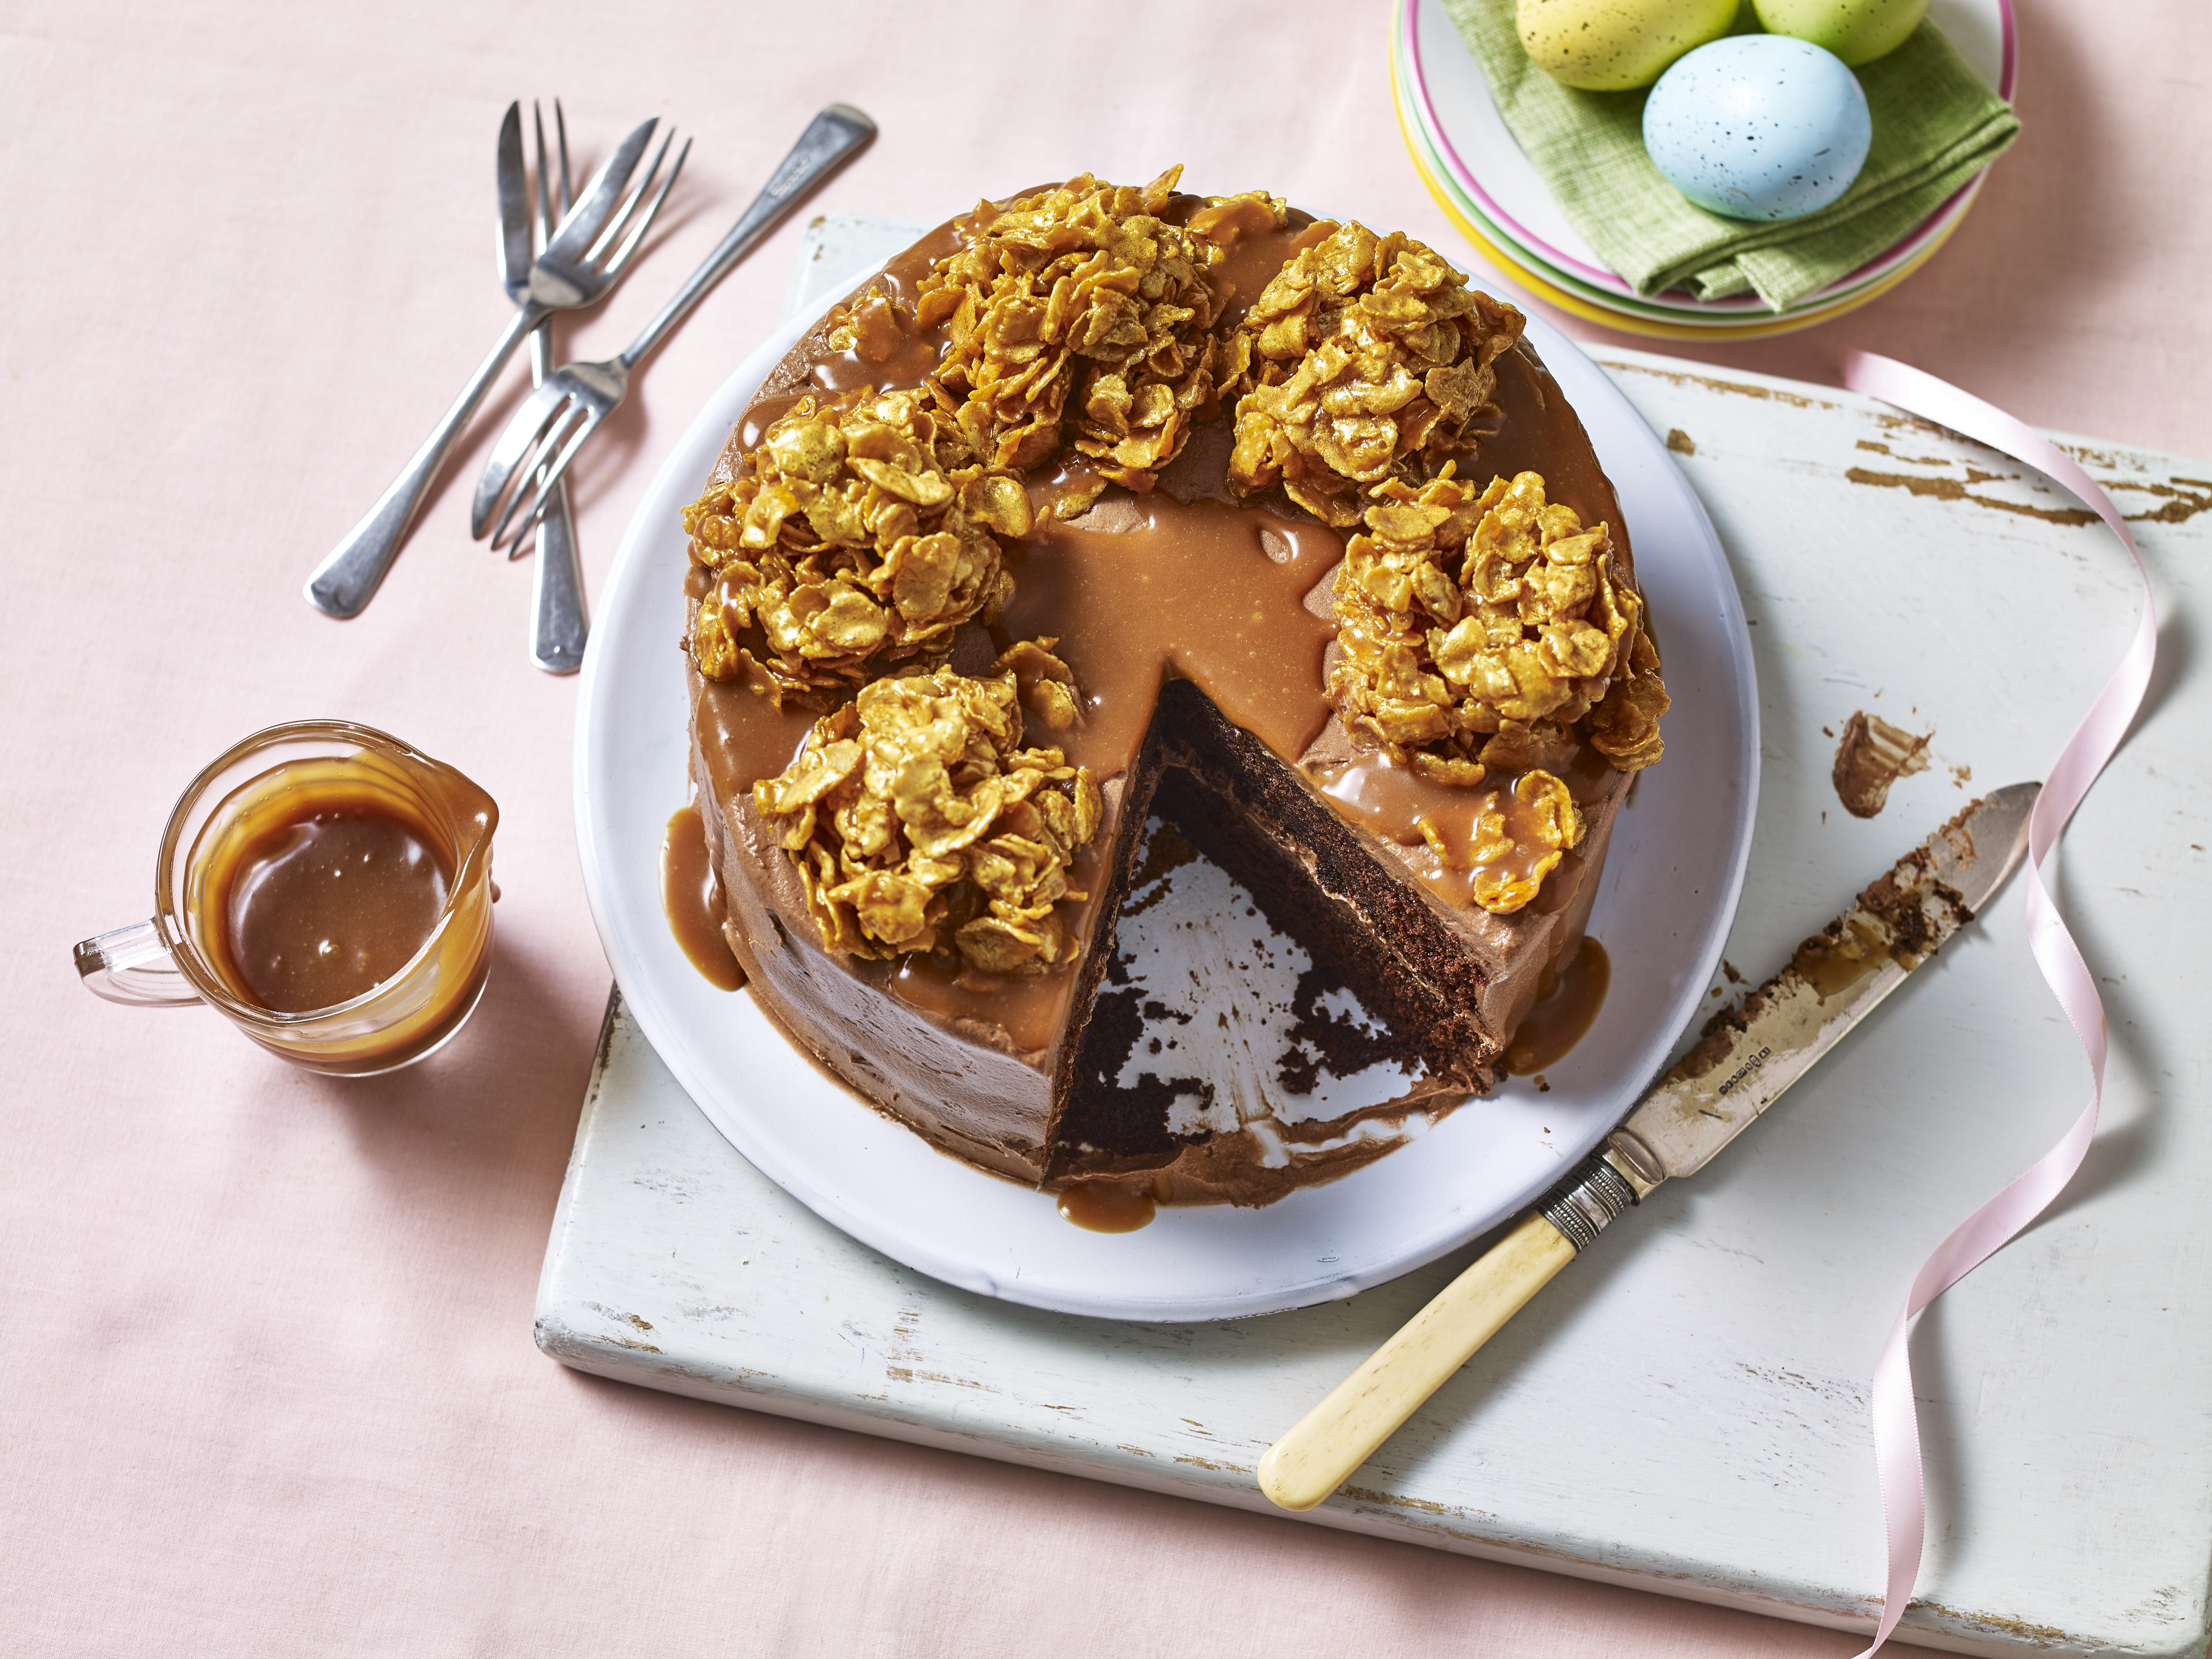 Chocolate_Easter_Cake_L2